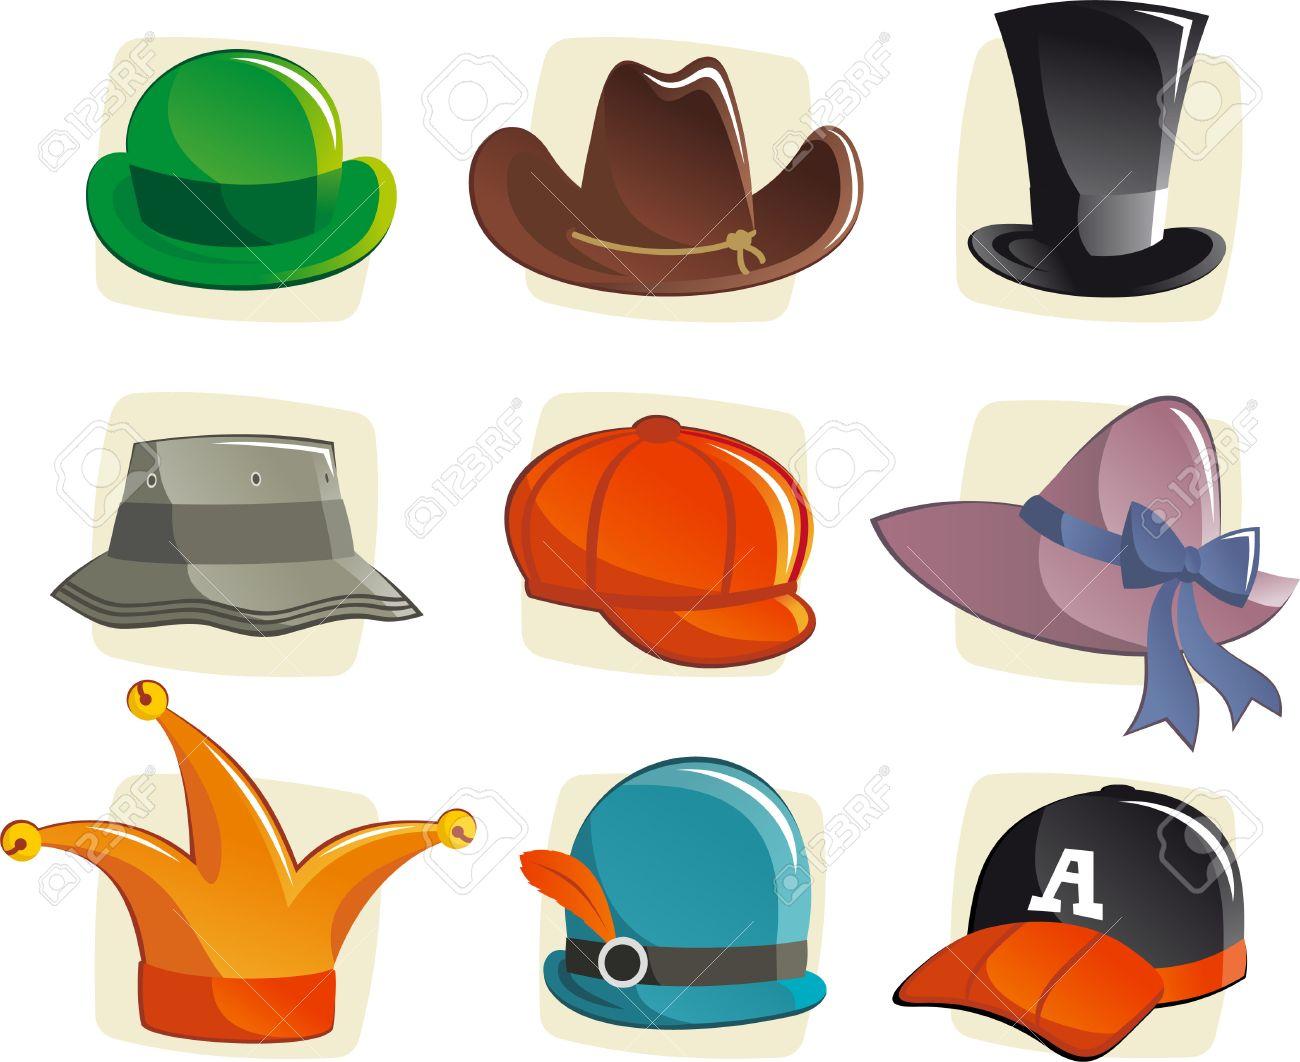 Cowboy Cartoon Images & Stock Pictures. Royalty Free Cowboy ...